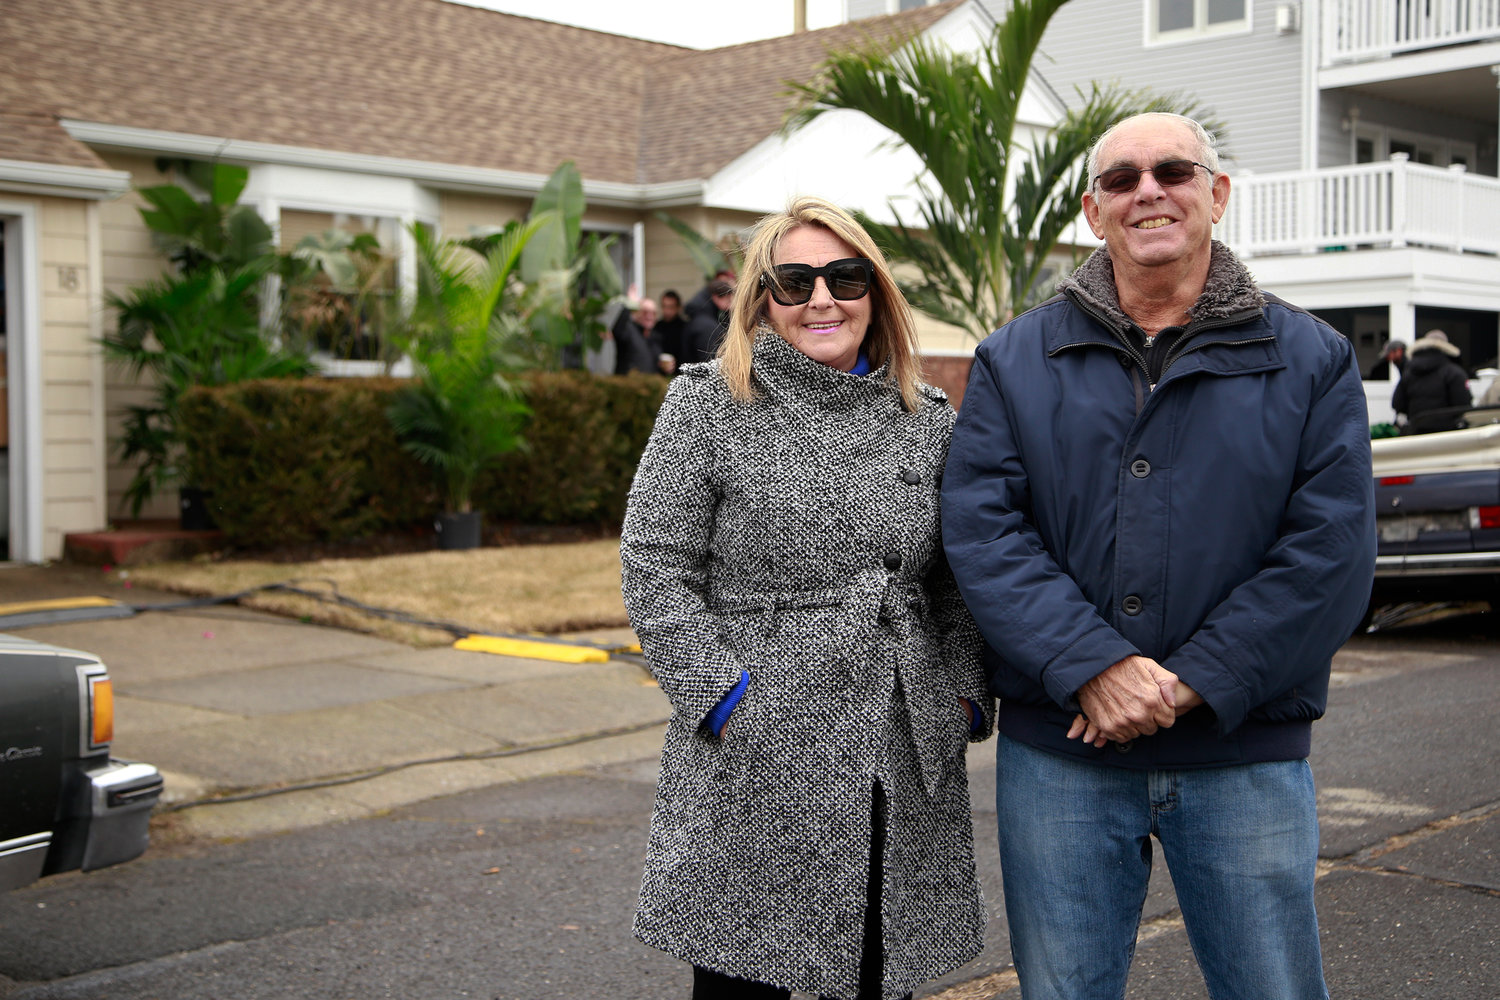 Joyce Coletti, a real estate broker at Douglas Elliman, with Steve Rothman, the owner of a home where a film crew shot a scene for a new Showtime series that will air in the summer.